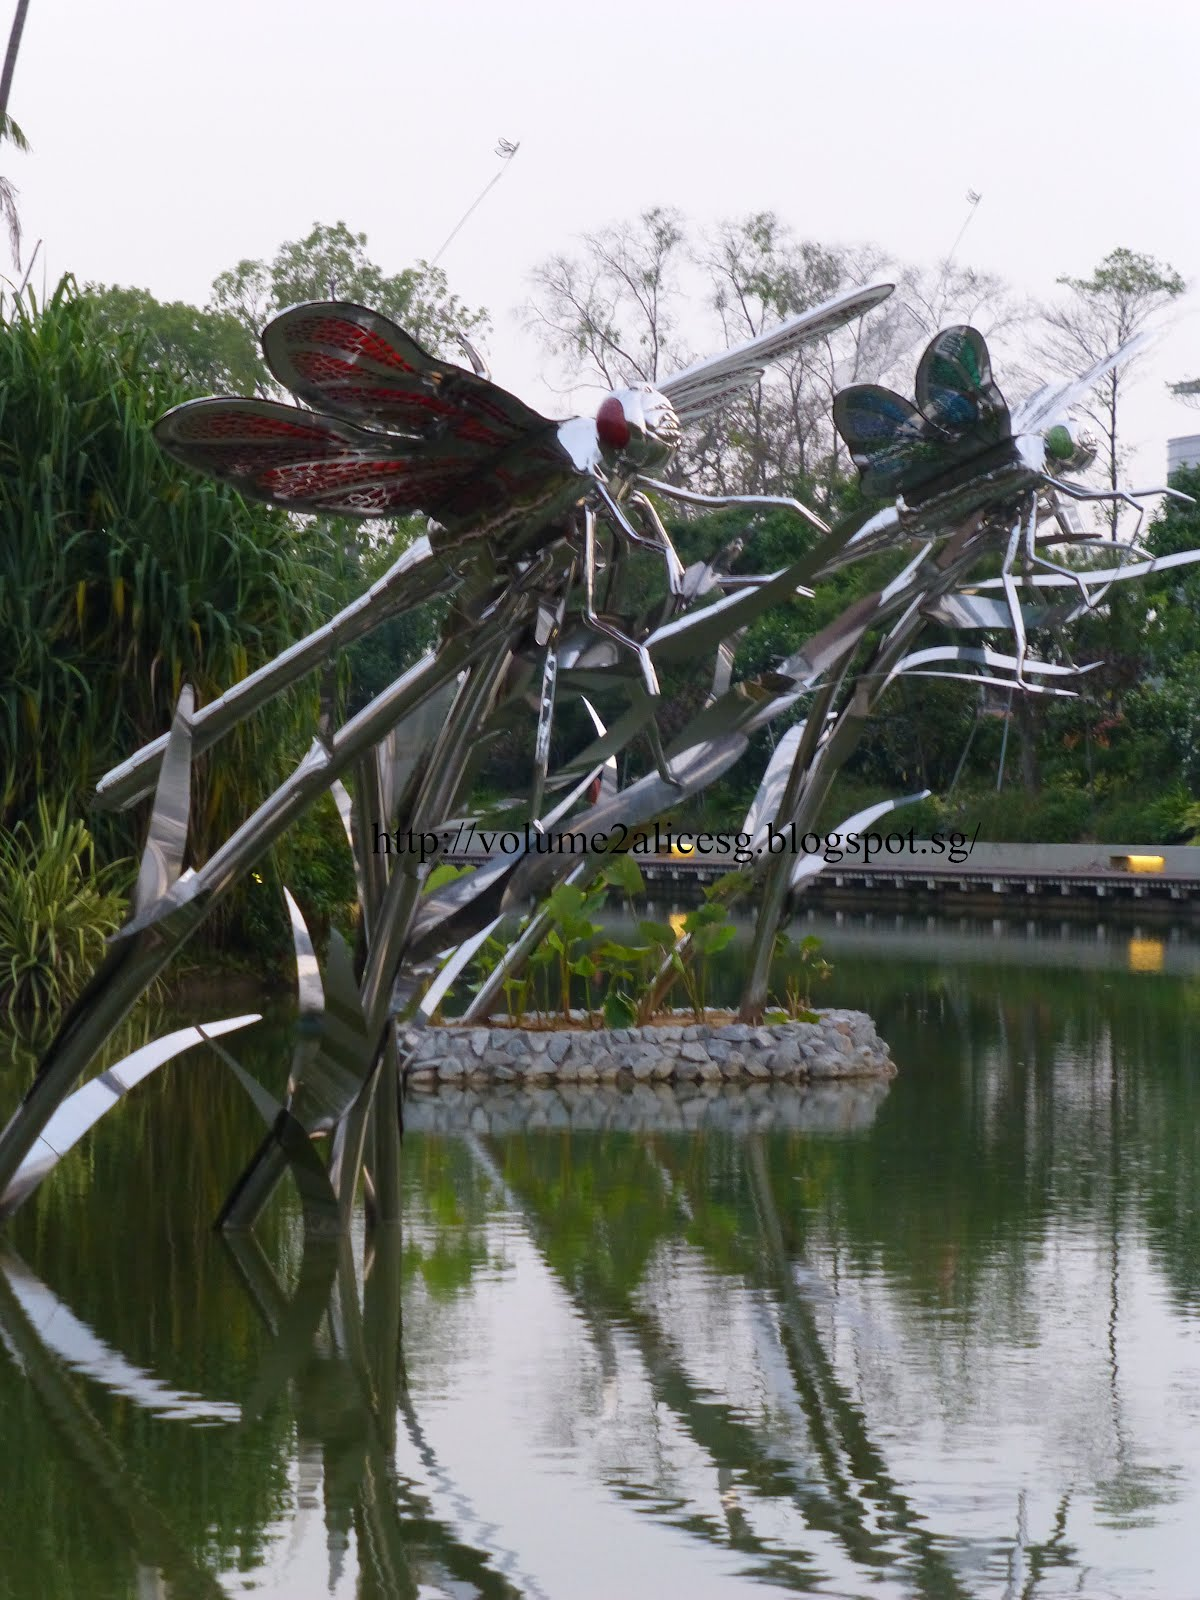 in gardens by the bay you dont have to pay any admission fee to enter the dragonfly lake be sure to catch dragonflies resting around the lakes